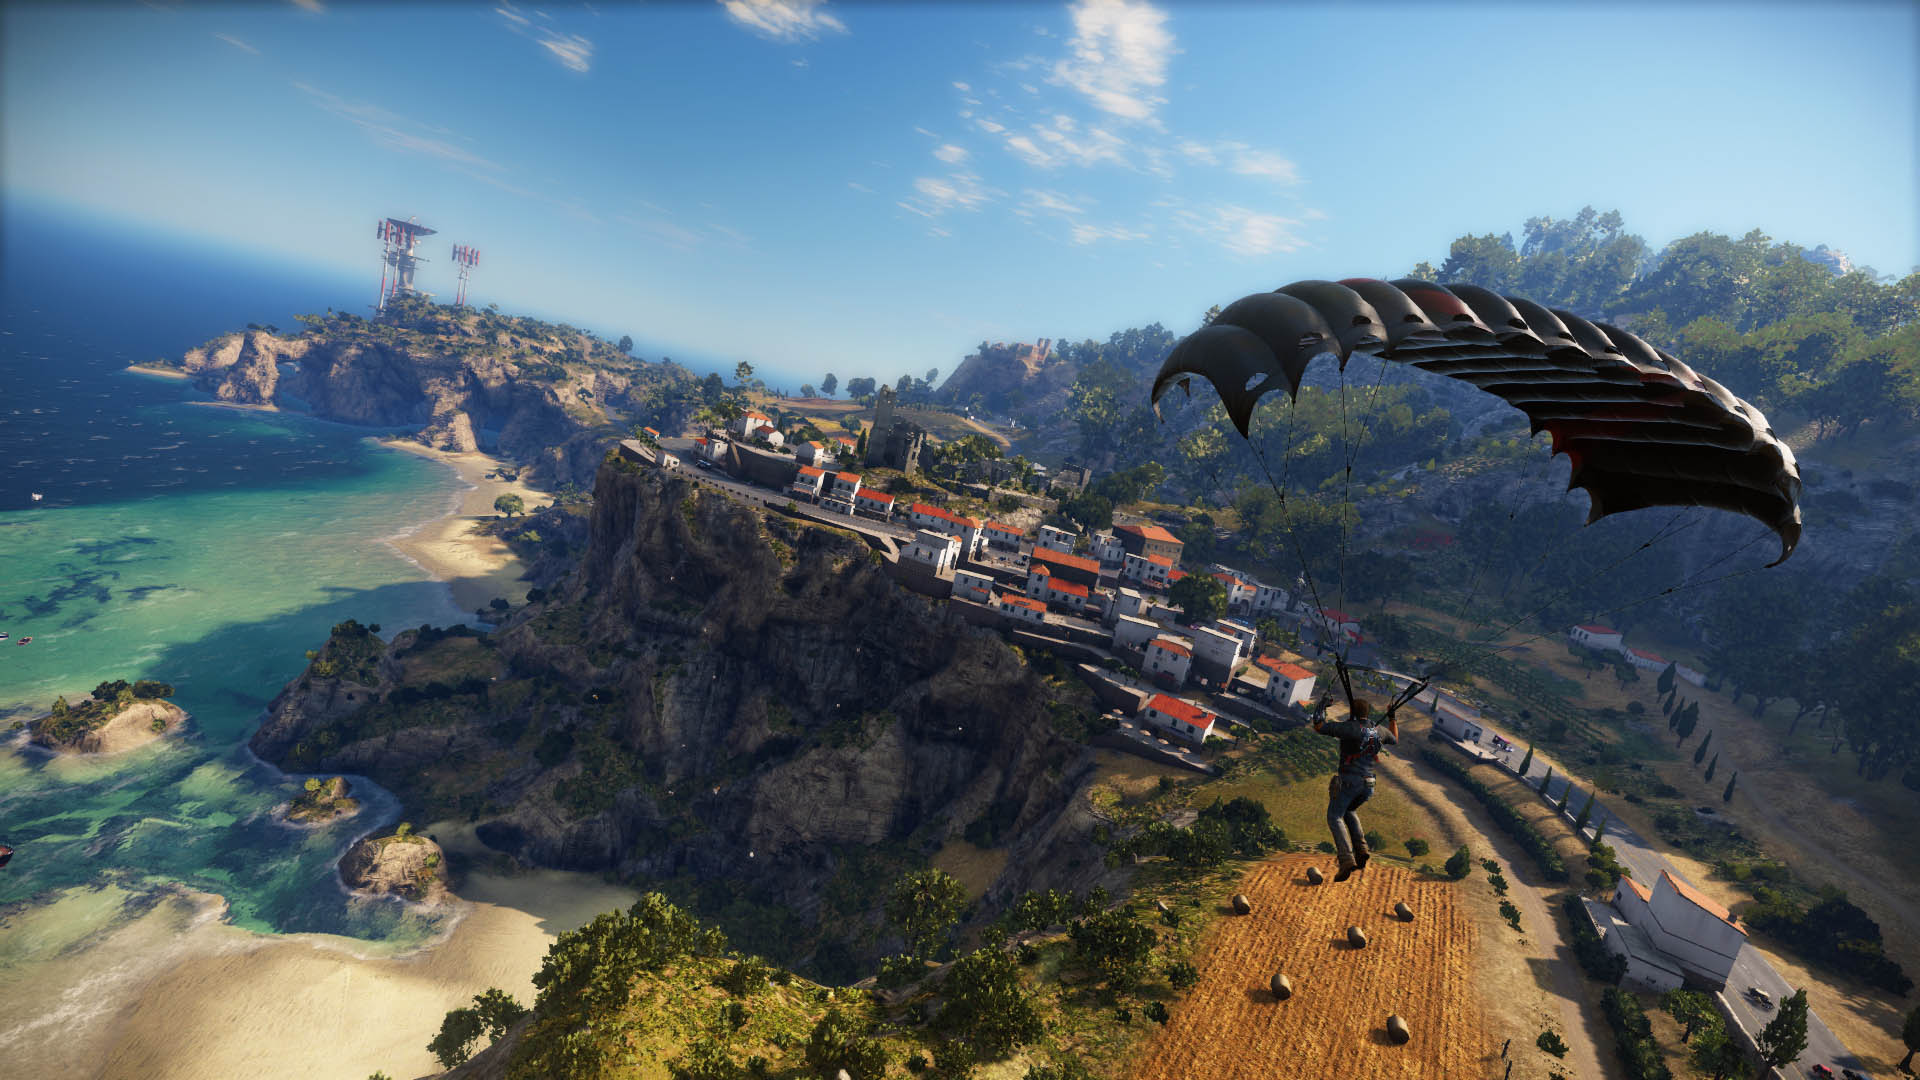 download just cause 3 xl edition singlelink iso cracked by cpy conspir4cy reloaded hi2u plaza prophet multi10 language full version free for pc 2017 gratis